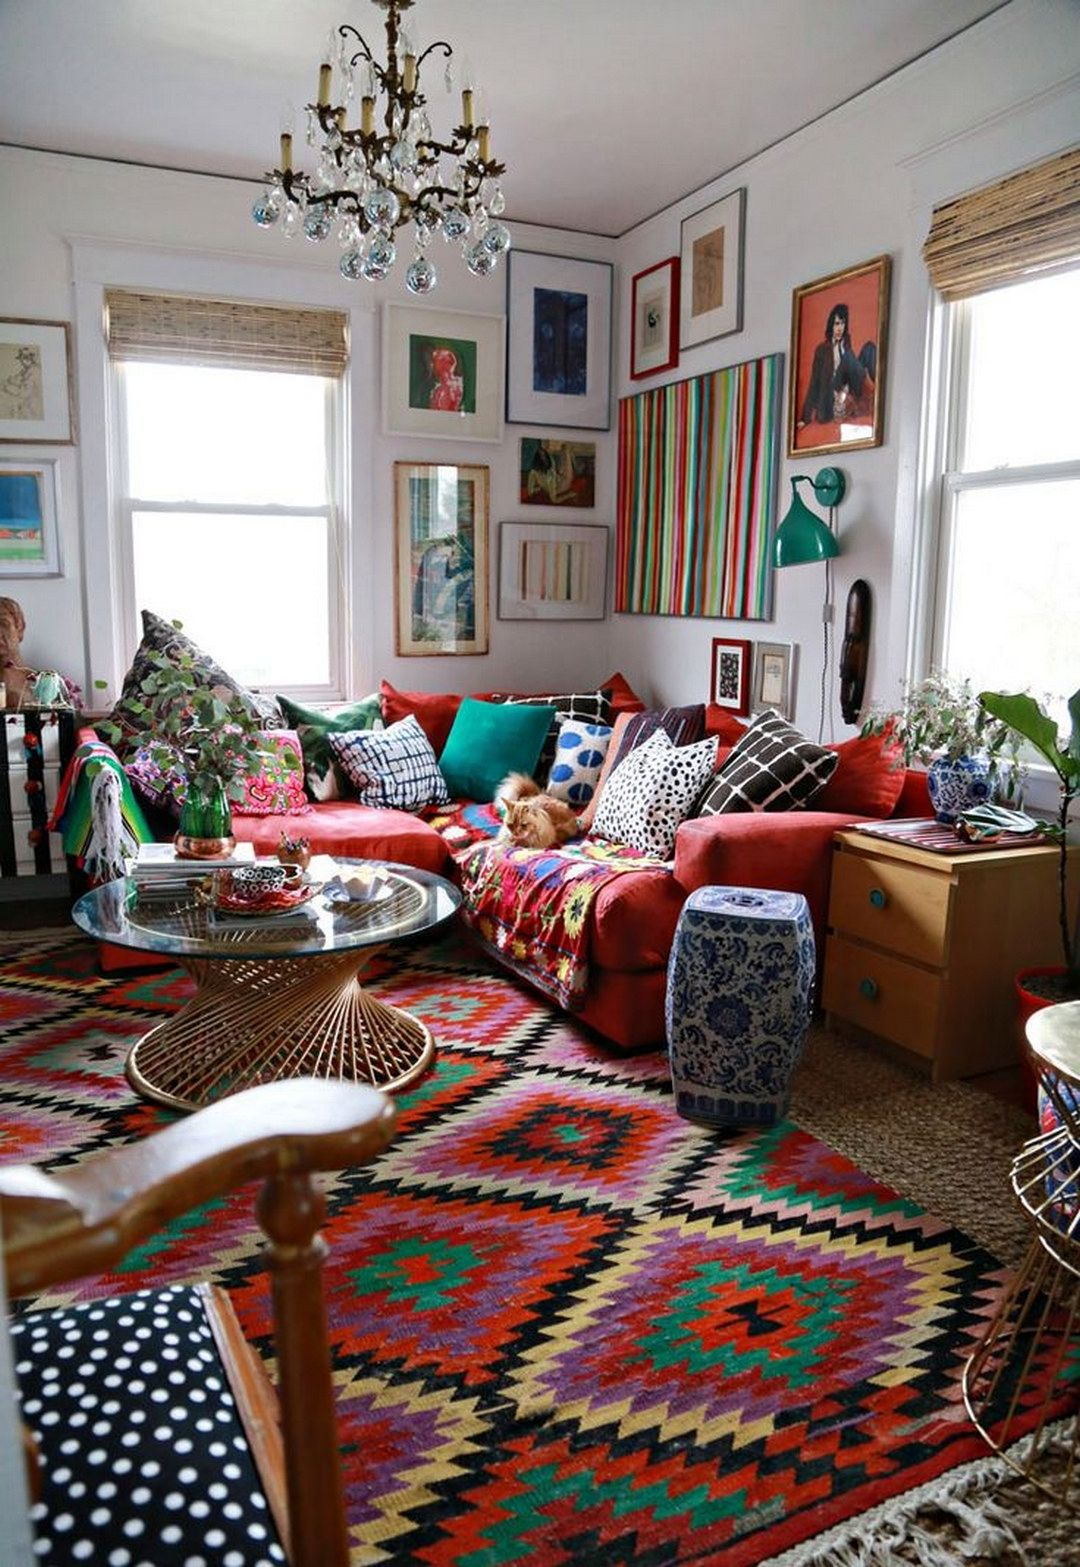 125 Adorable Bohemian Style Decor Ideas Https Www Futuristarchitecture